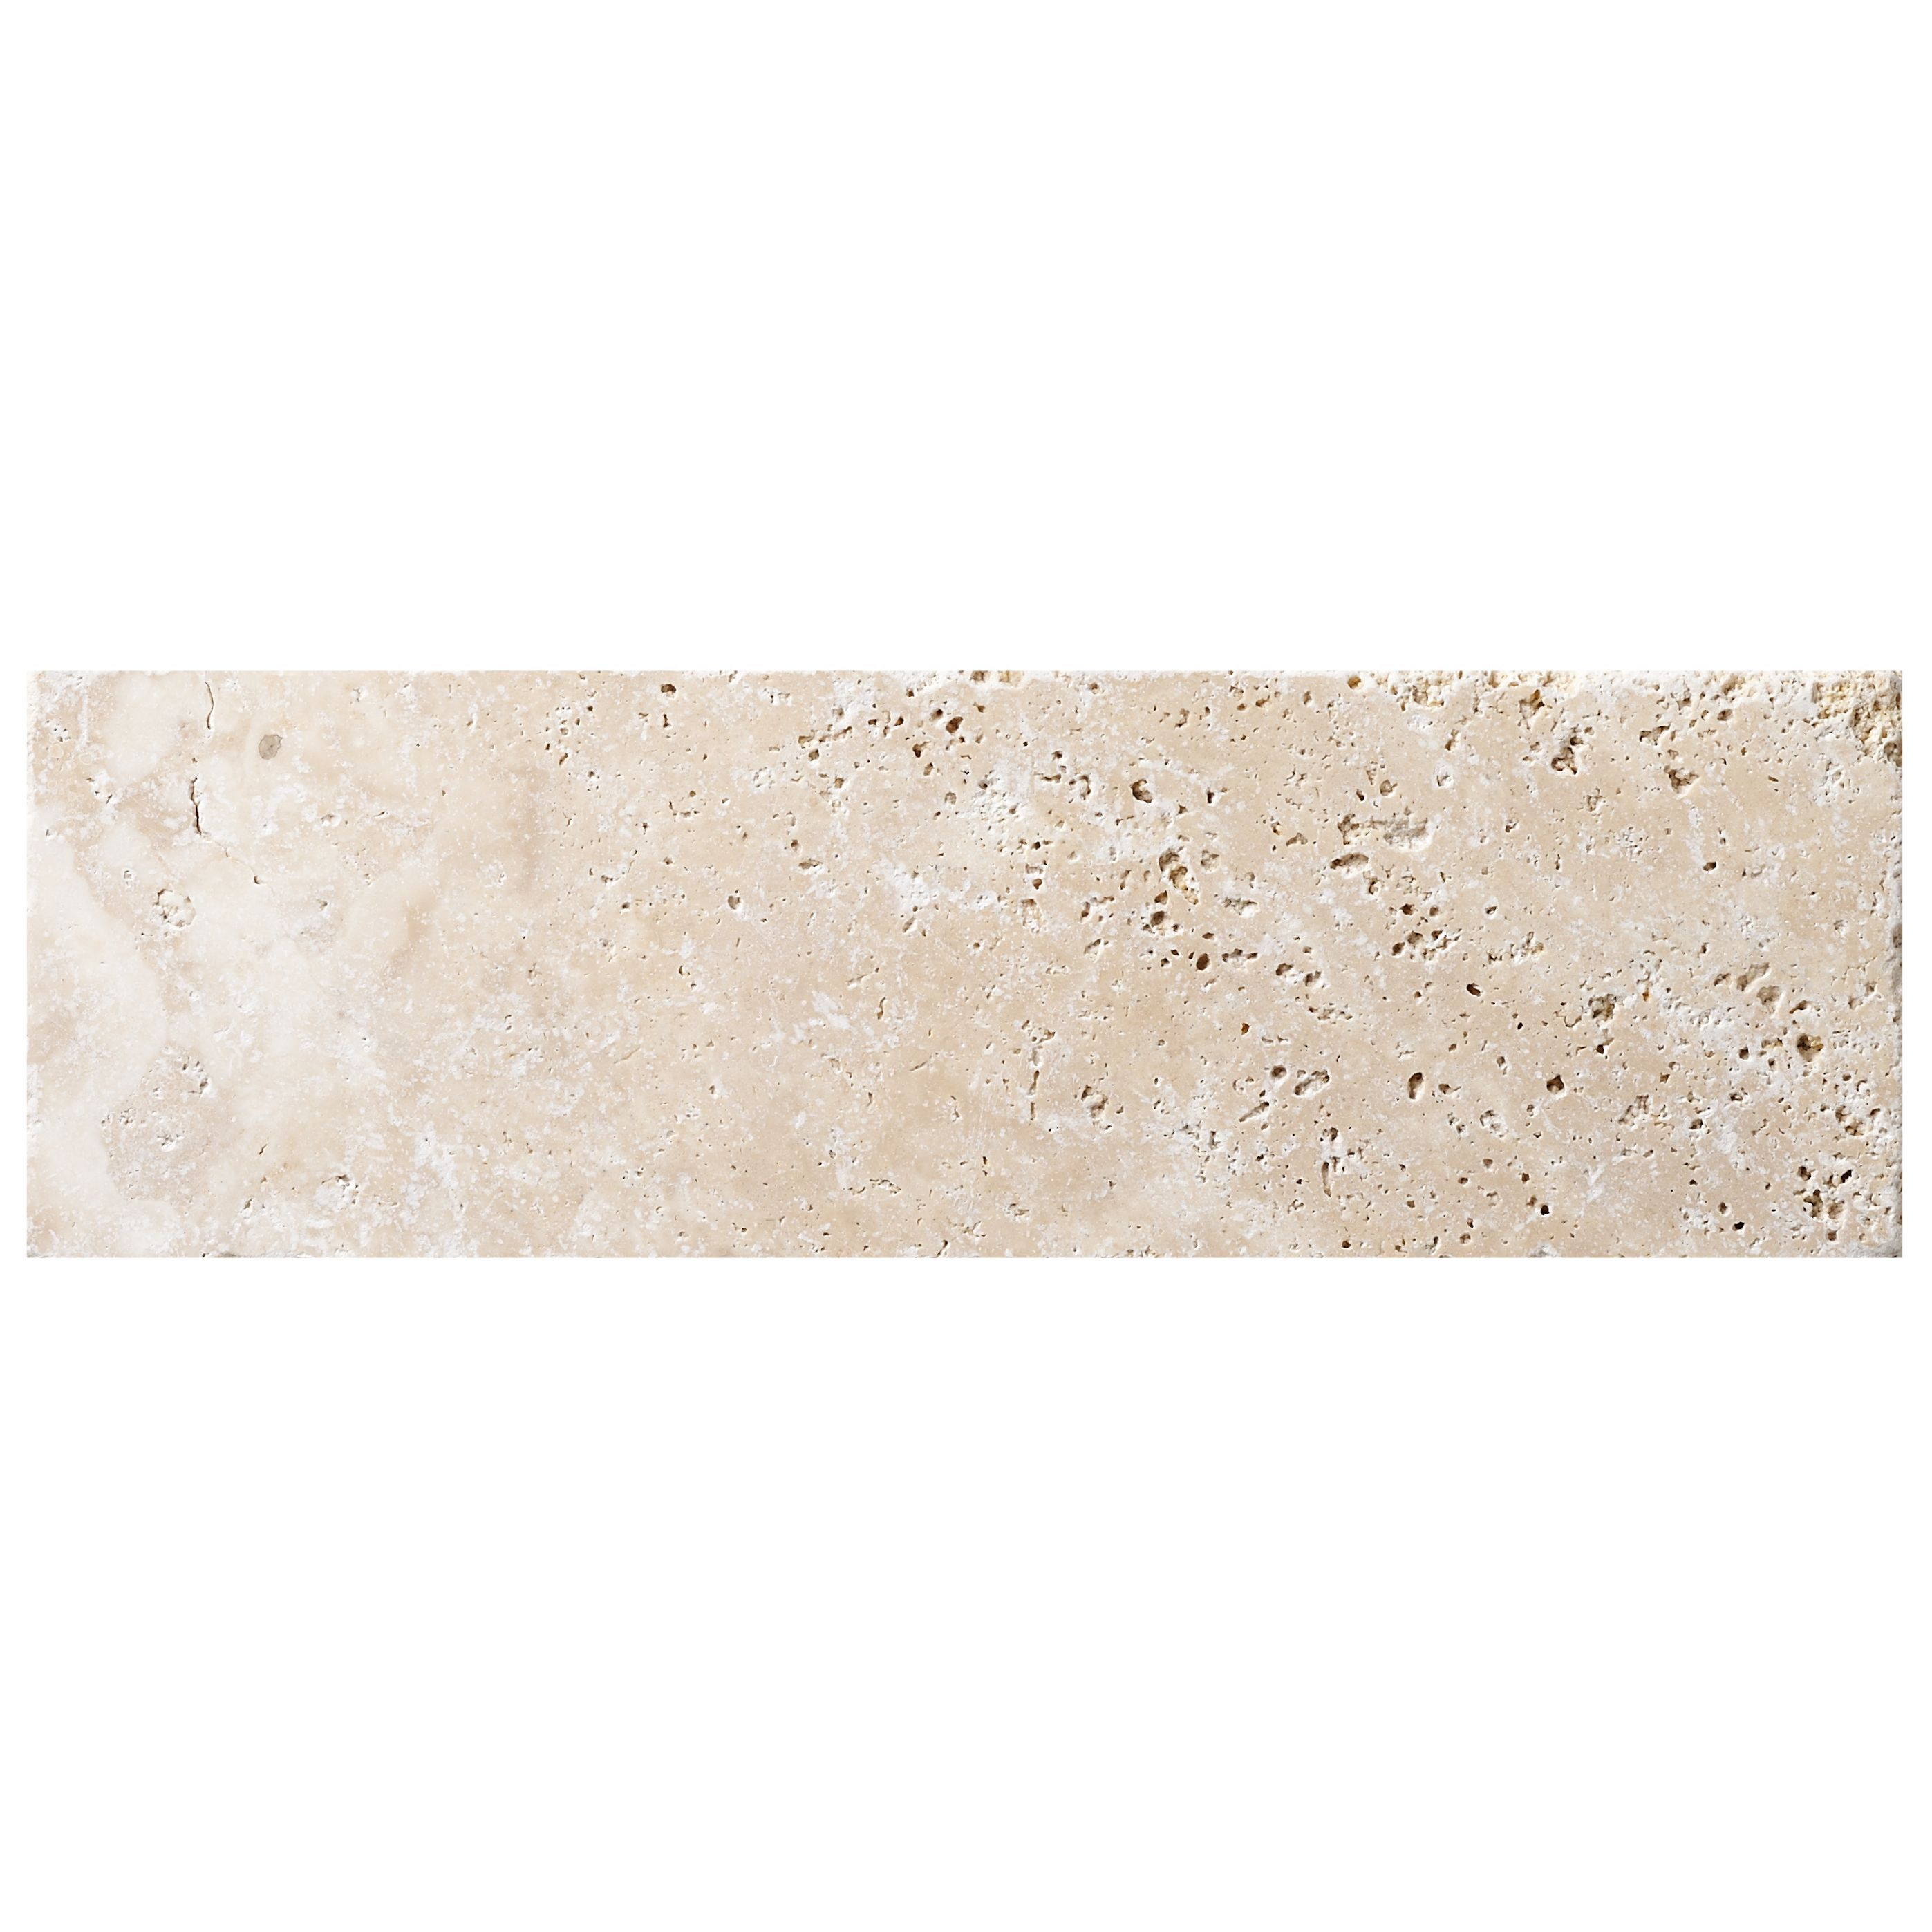 Tumbled Noce Stone Effect Travertine Wall Tile Pack Of 15: Tumbled Light Beige Stone Effect Travertine Wall Tile